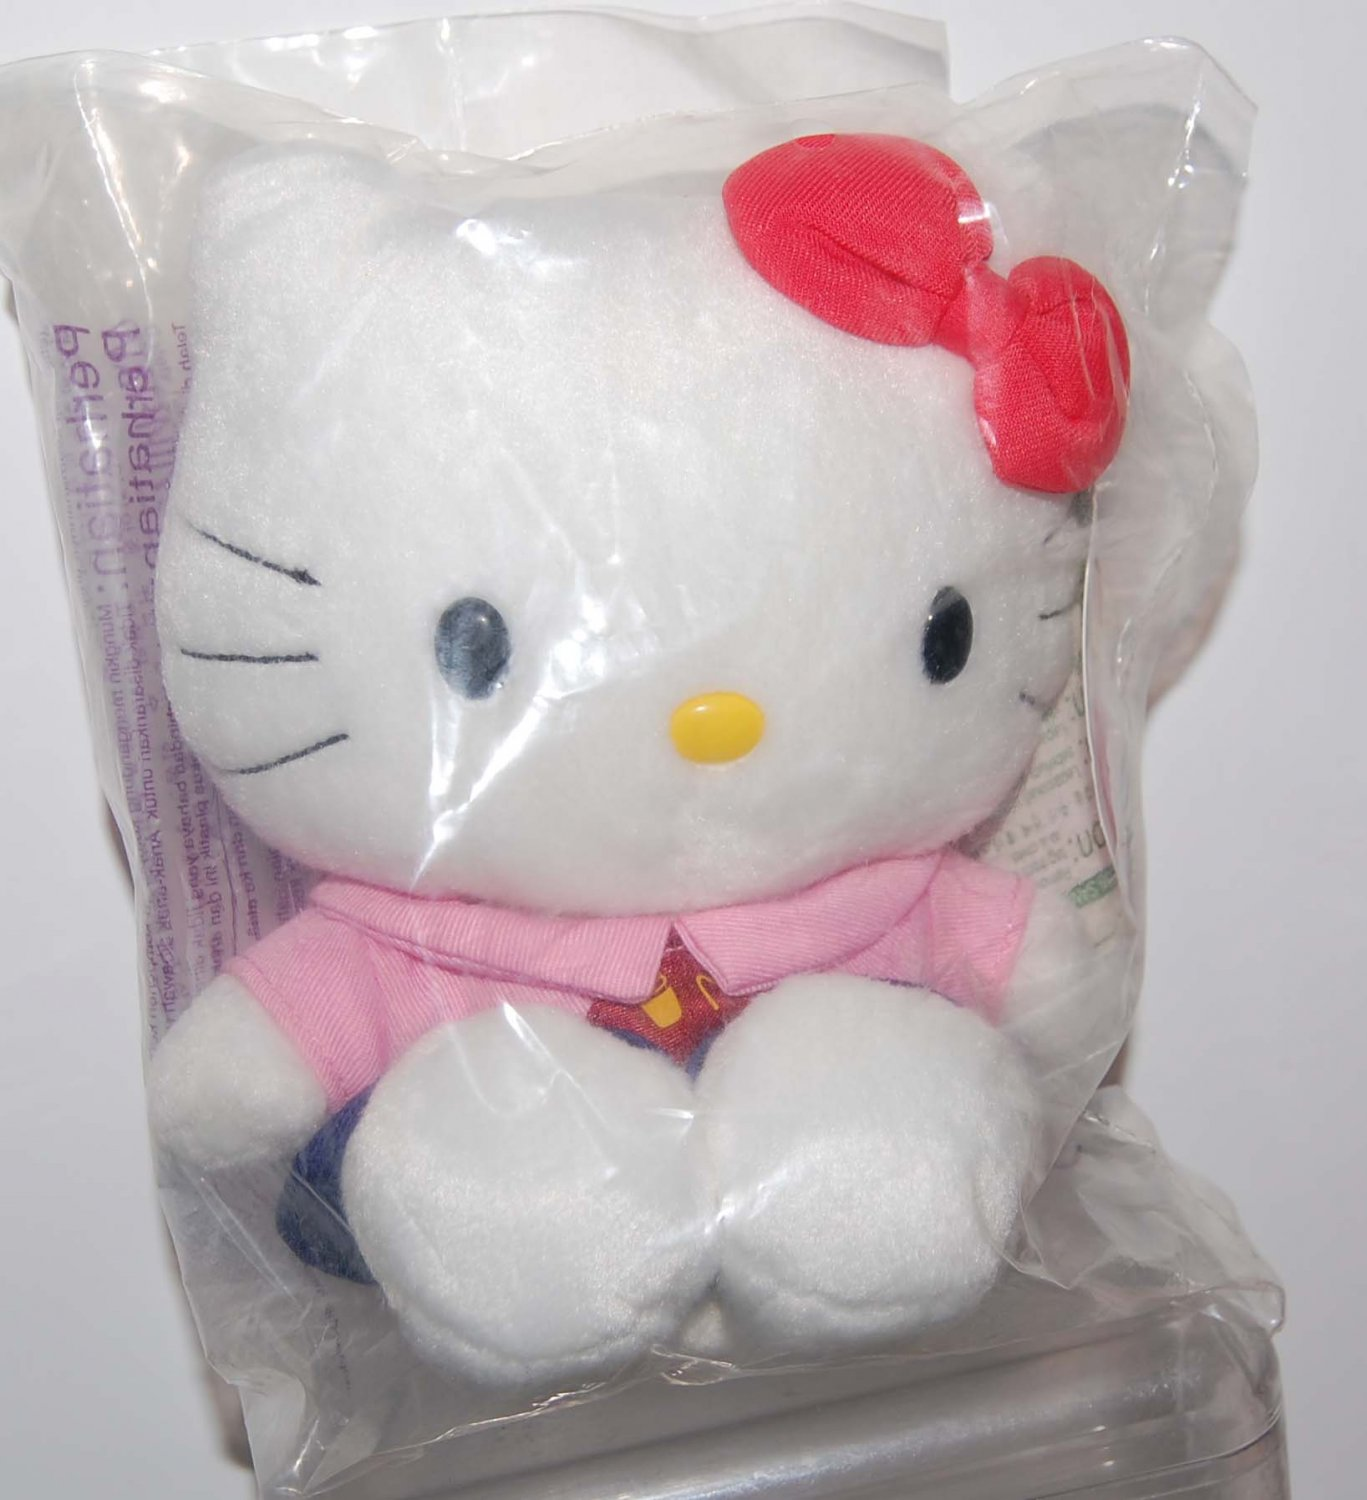 "McDonald's Sanrio Hello Kitty in Pink Staff Uniform Plush Doll 6"" H"